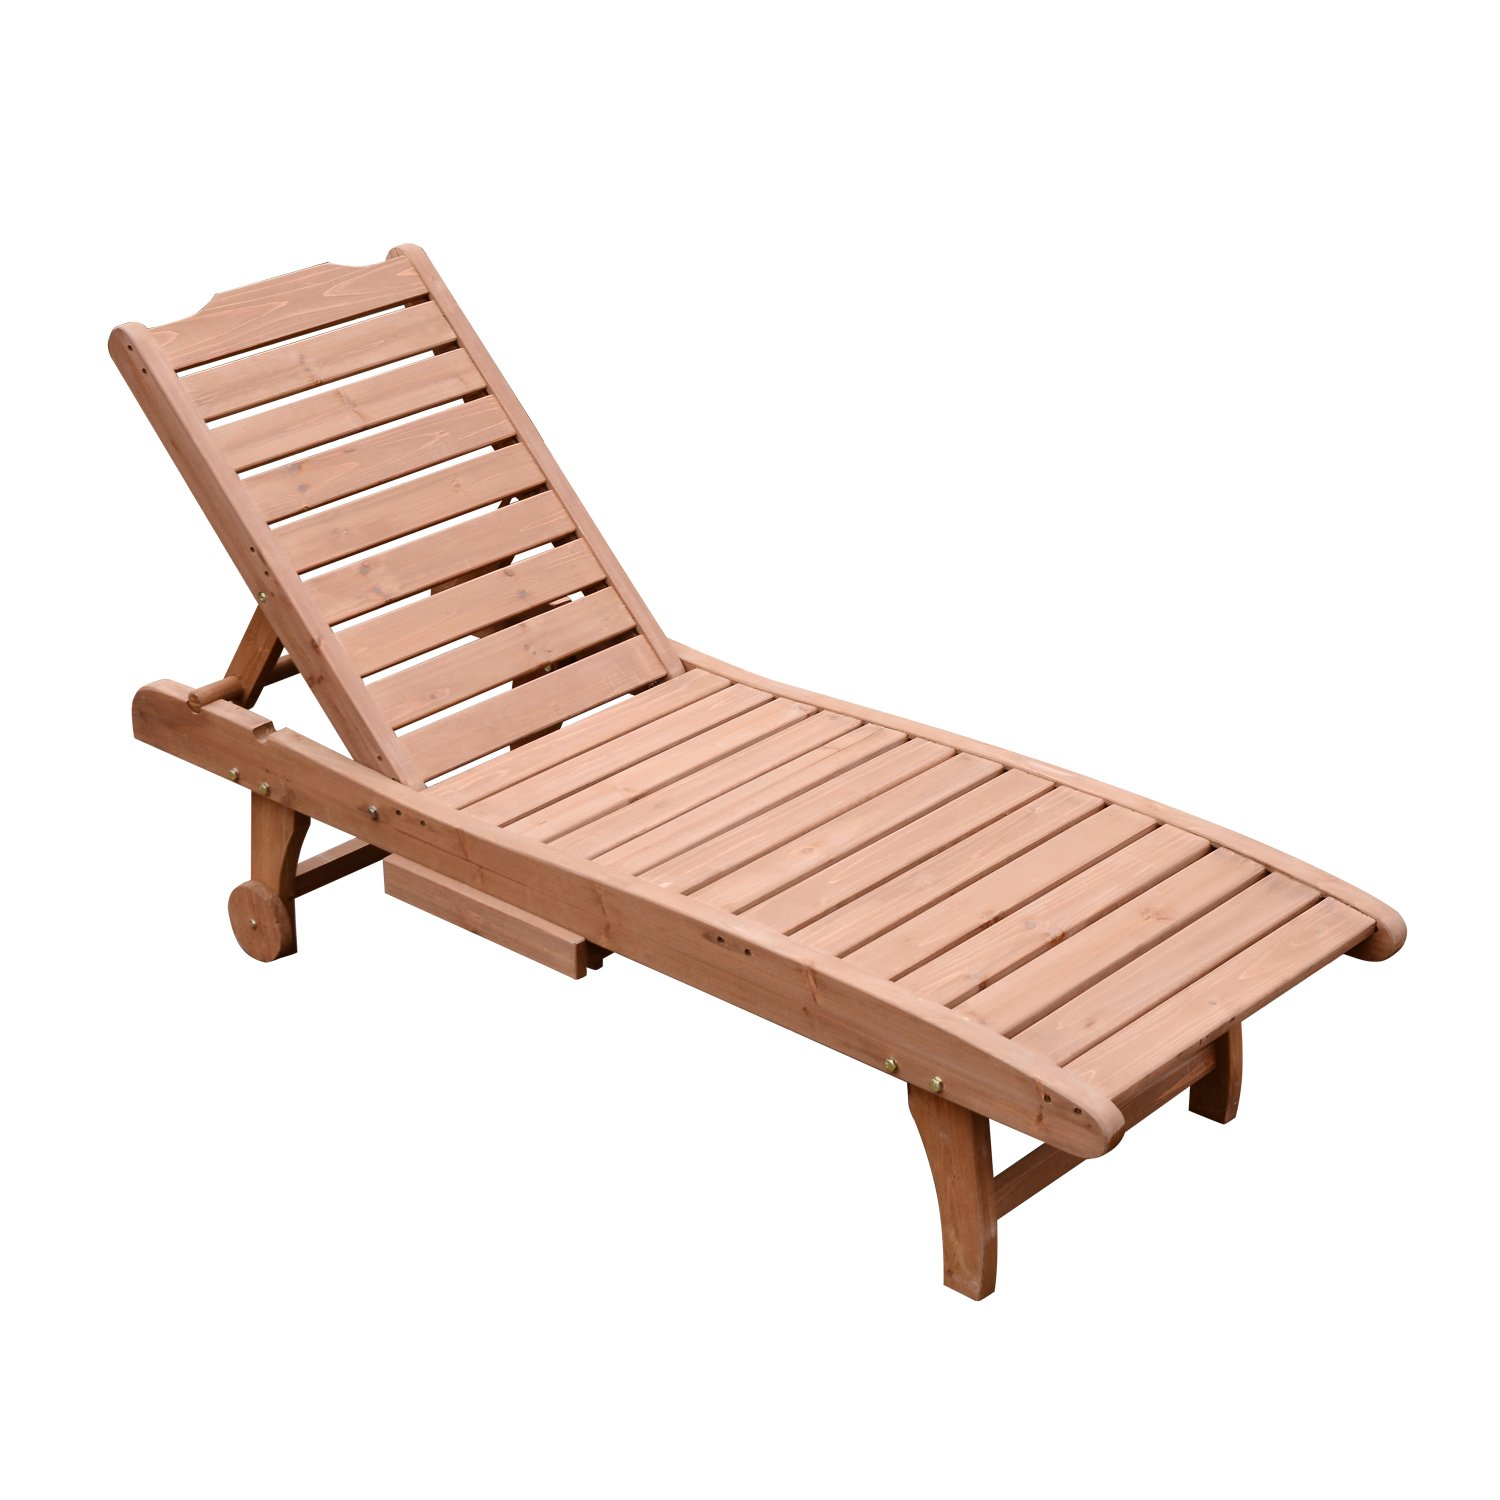 Outsunny Wooden Outdoor Chaise Lounge Patio Pool Chair w/Pull-Out Tray by Outsunny